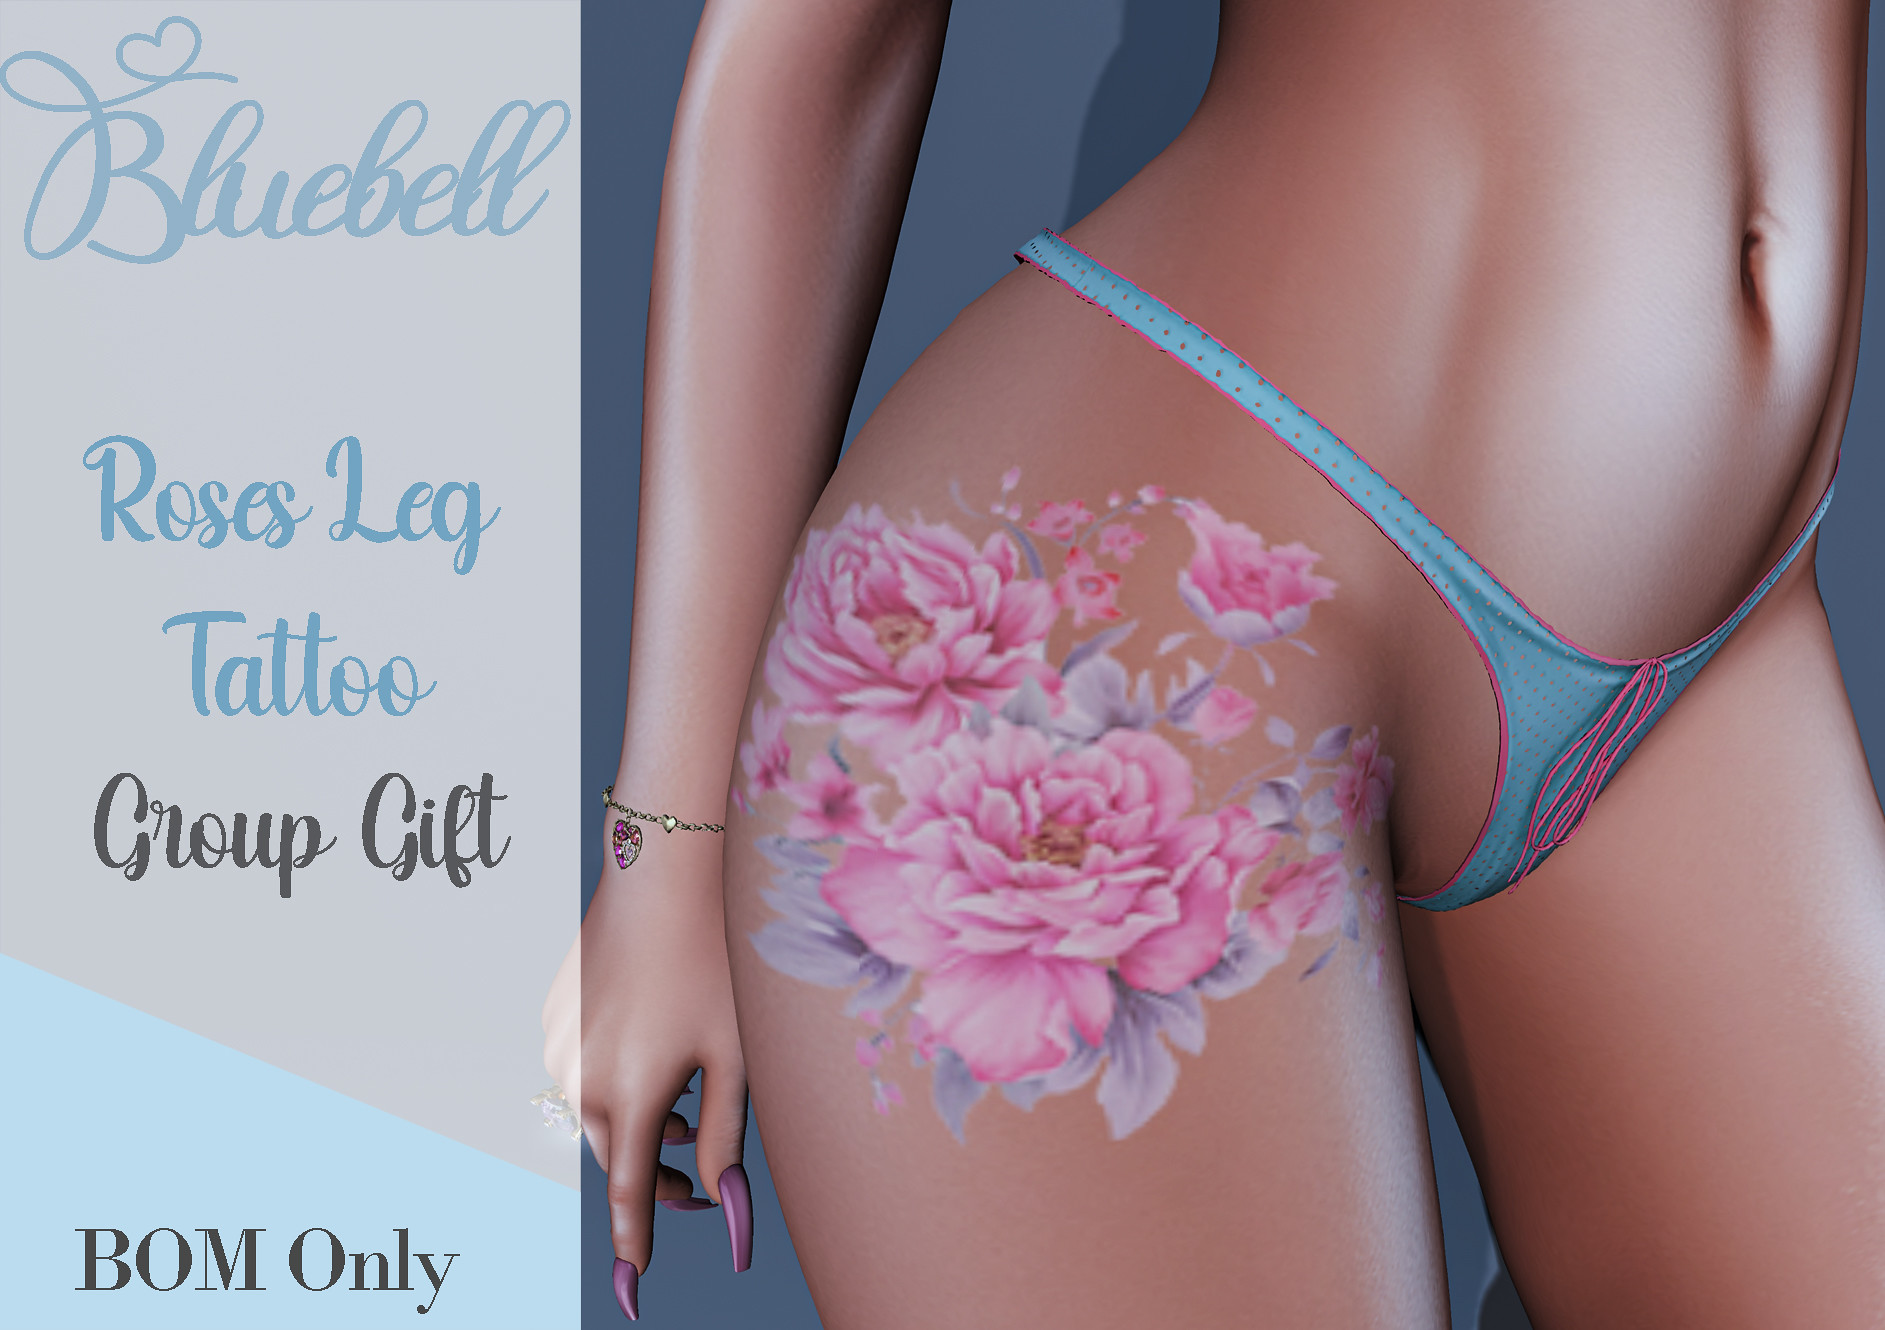 !  BLUEBELL- Roses Leg Tattoo Group Gift